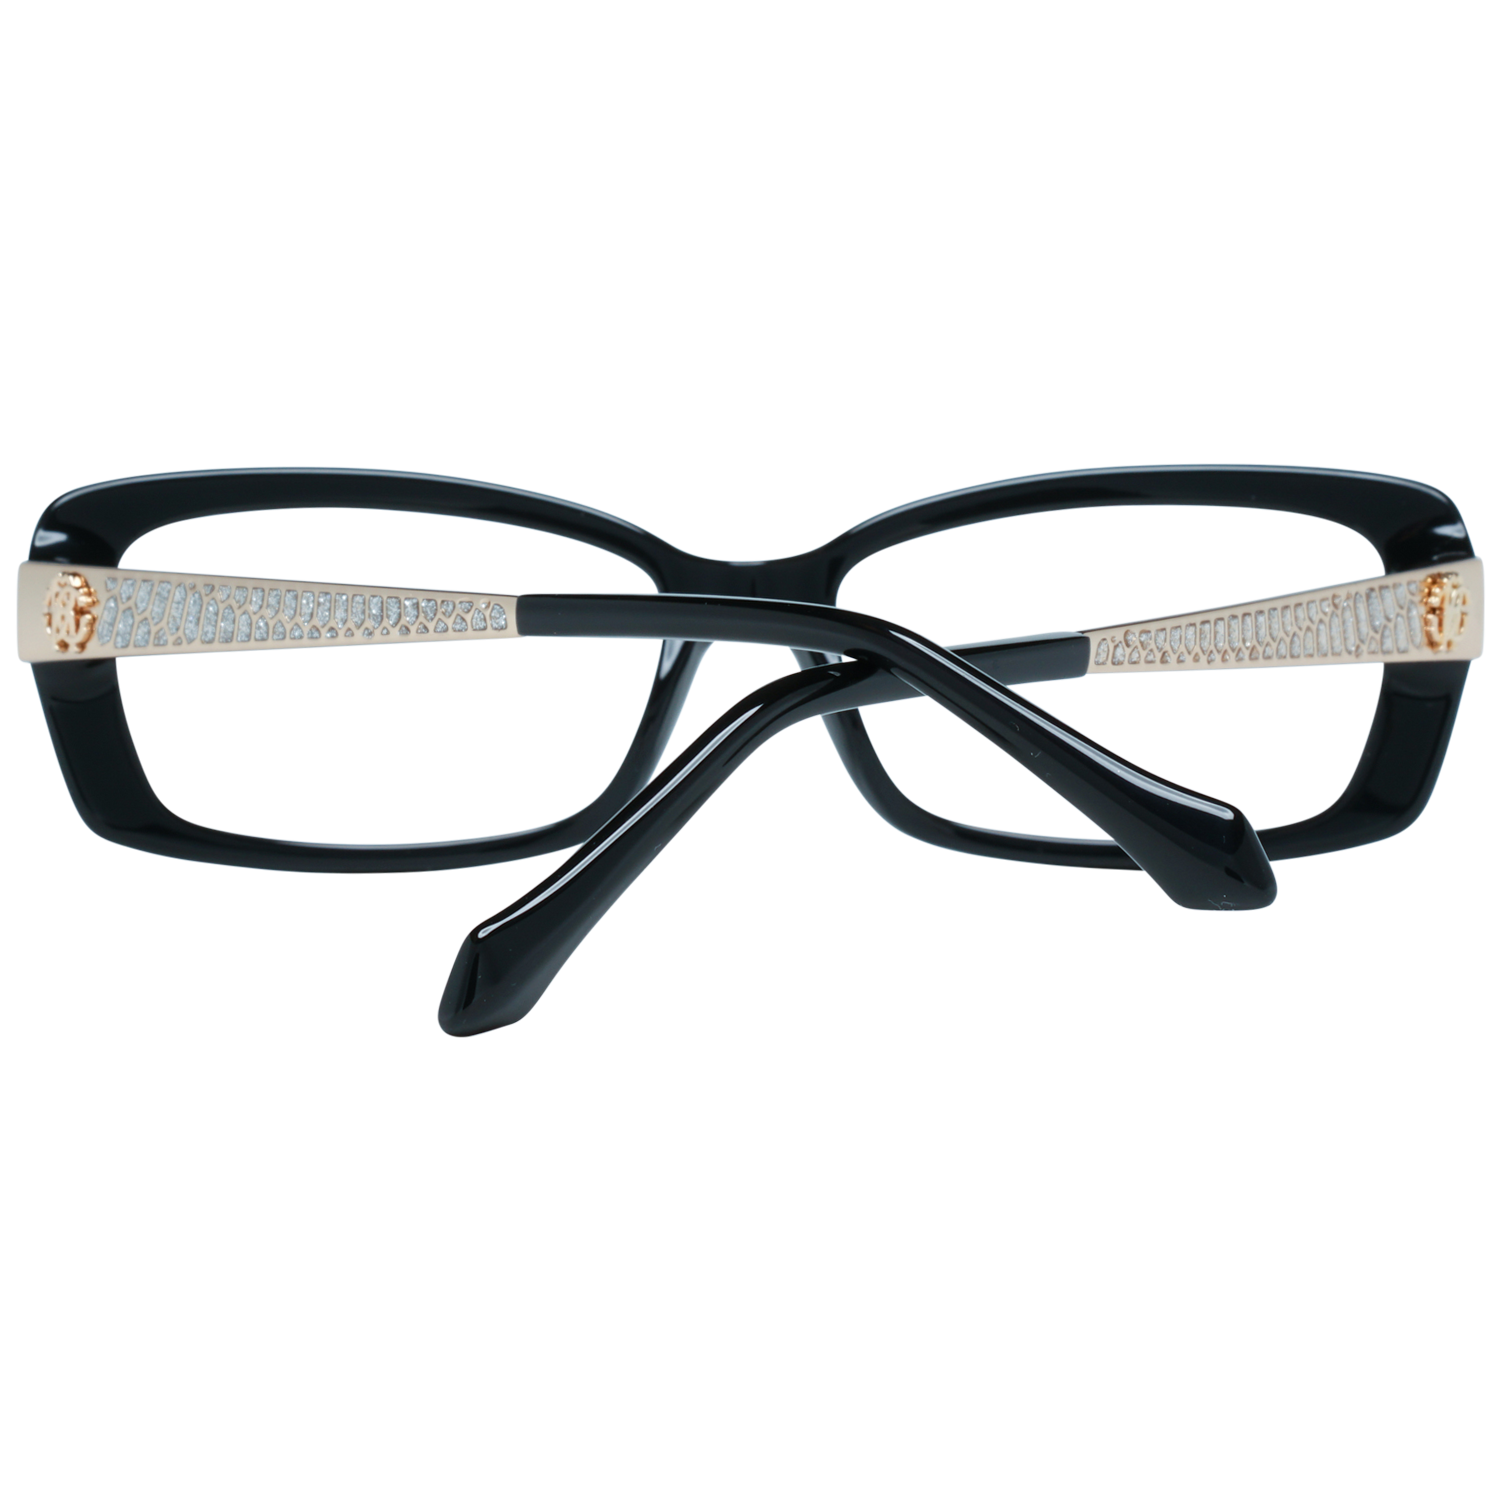 Roberto Cavalli Optical Frame RC0822 005 53 Women Black